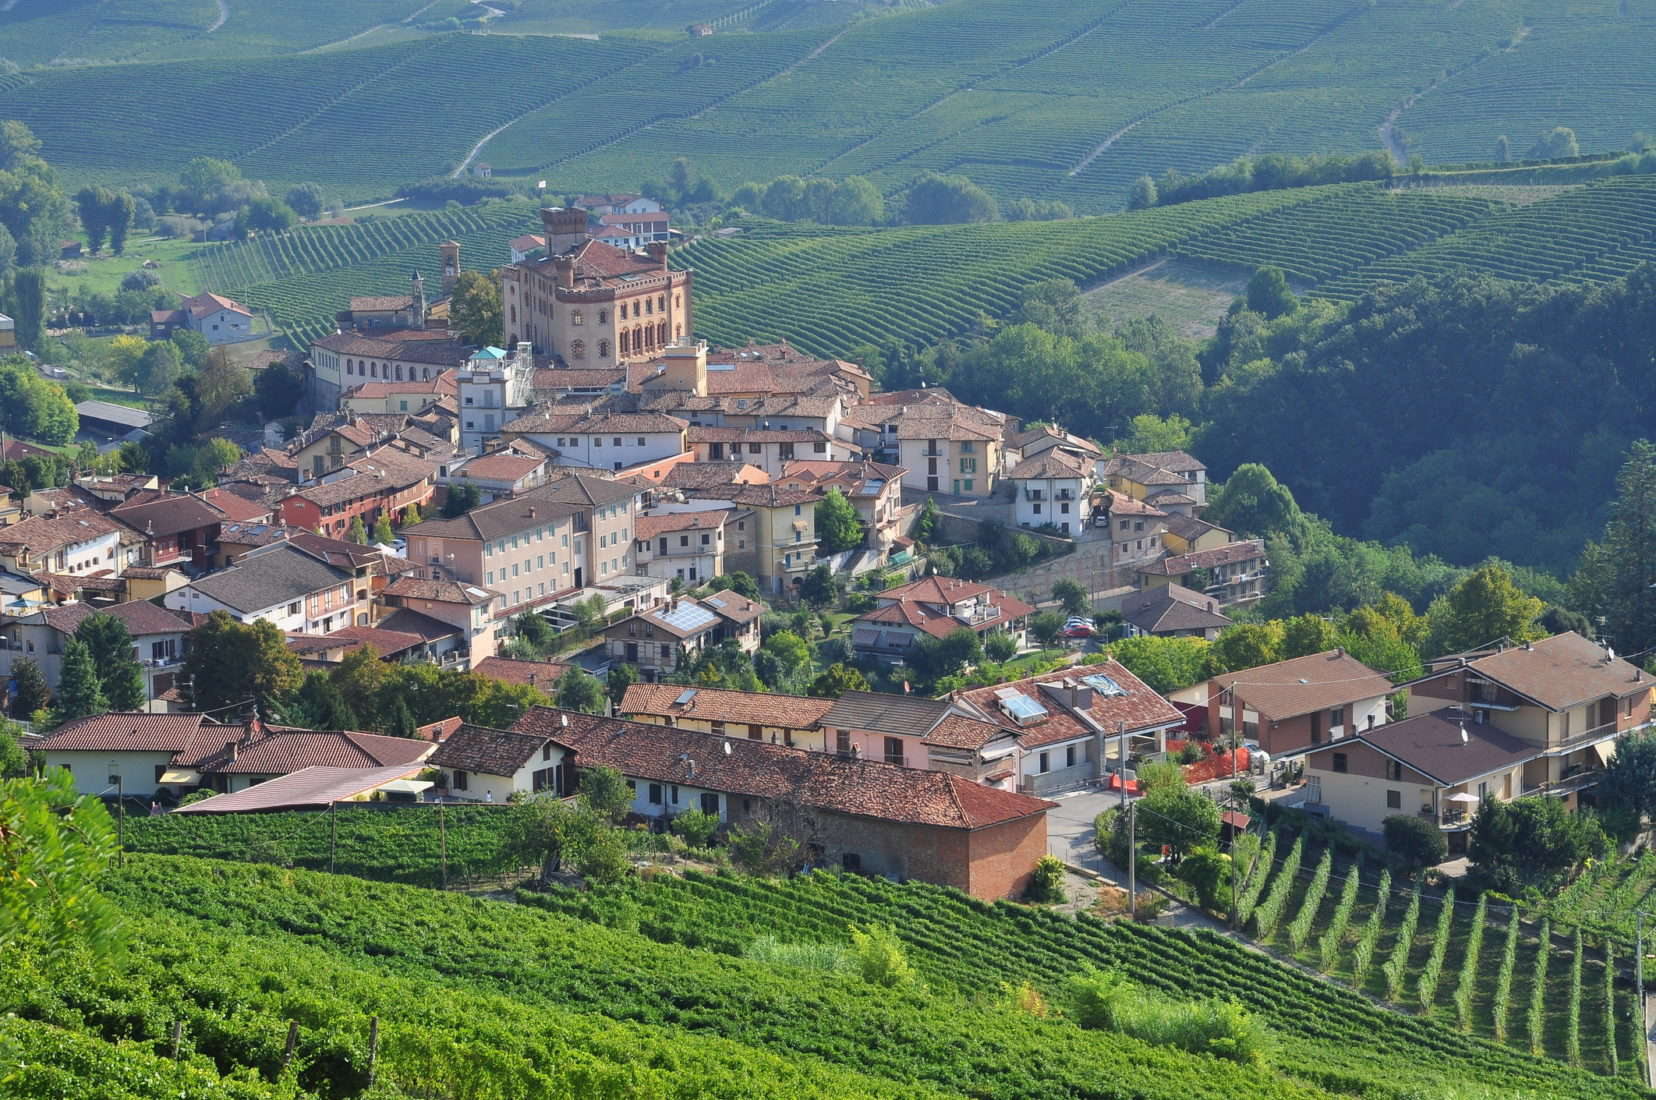 Langhe, the main Piedmont wine producing area. Barolo village. Unesco world heritage site. Vineyards on the South Piemonte hills, Italy. Italian green landscape